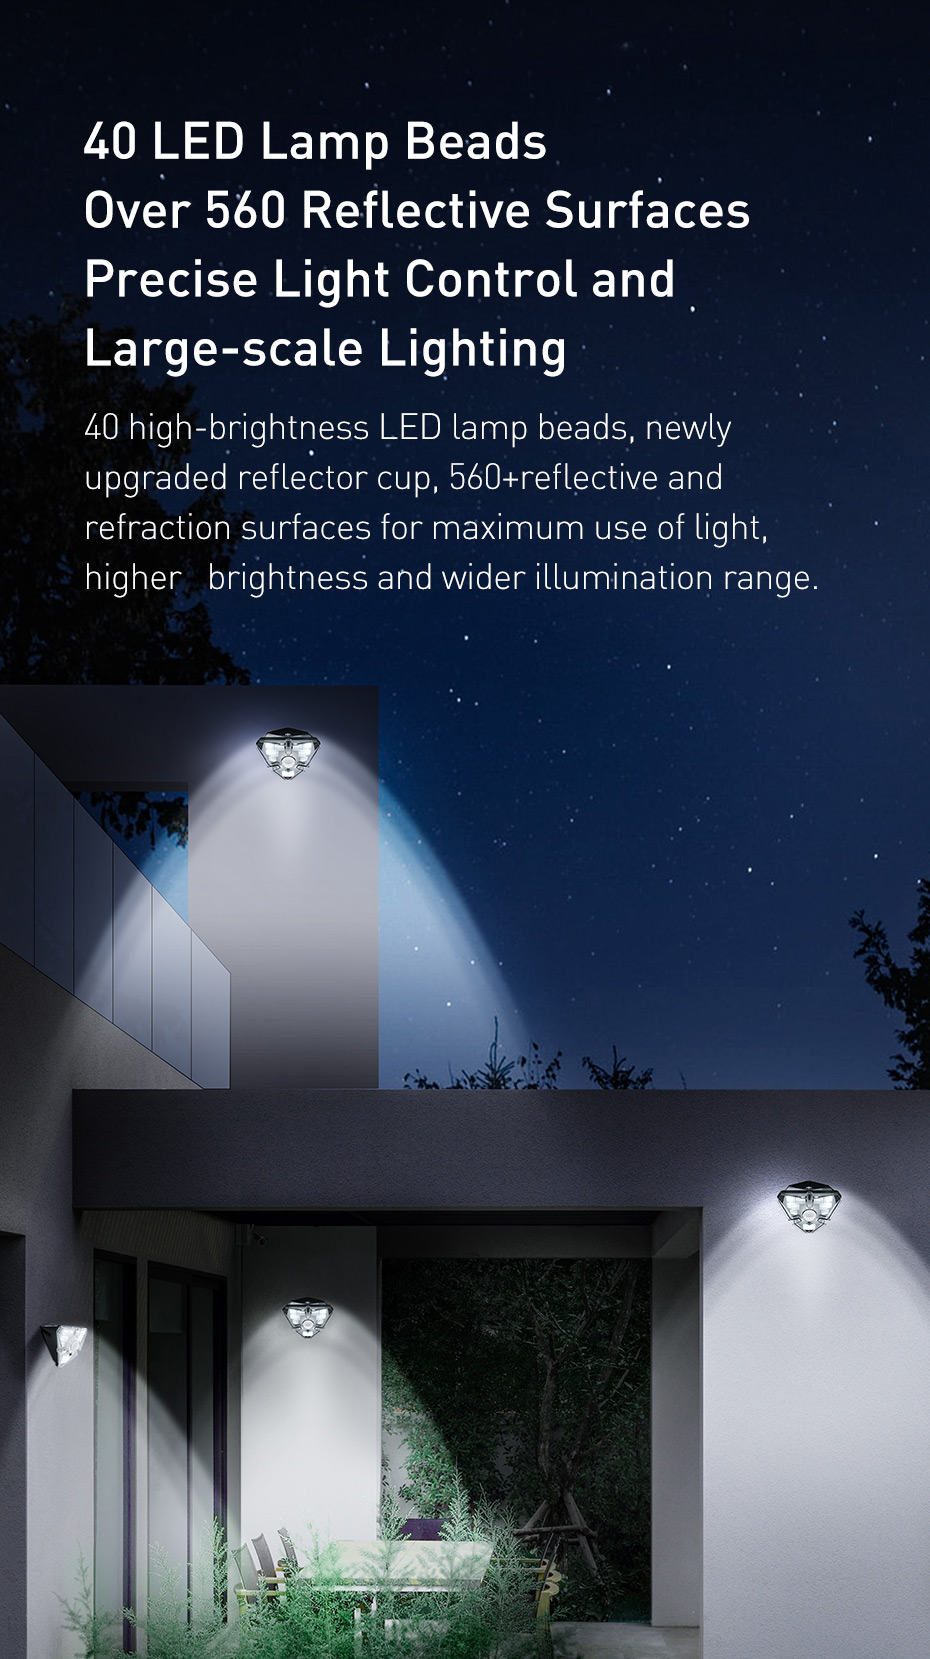 Baseus Outdoor Waterproof LED Solar Light With Motion Sensor 10 Baseus Outdoor Waterproof LED Solar Light With Motion Sensor Love Me Some Gadgets